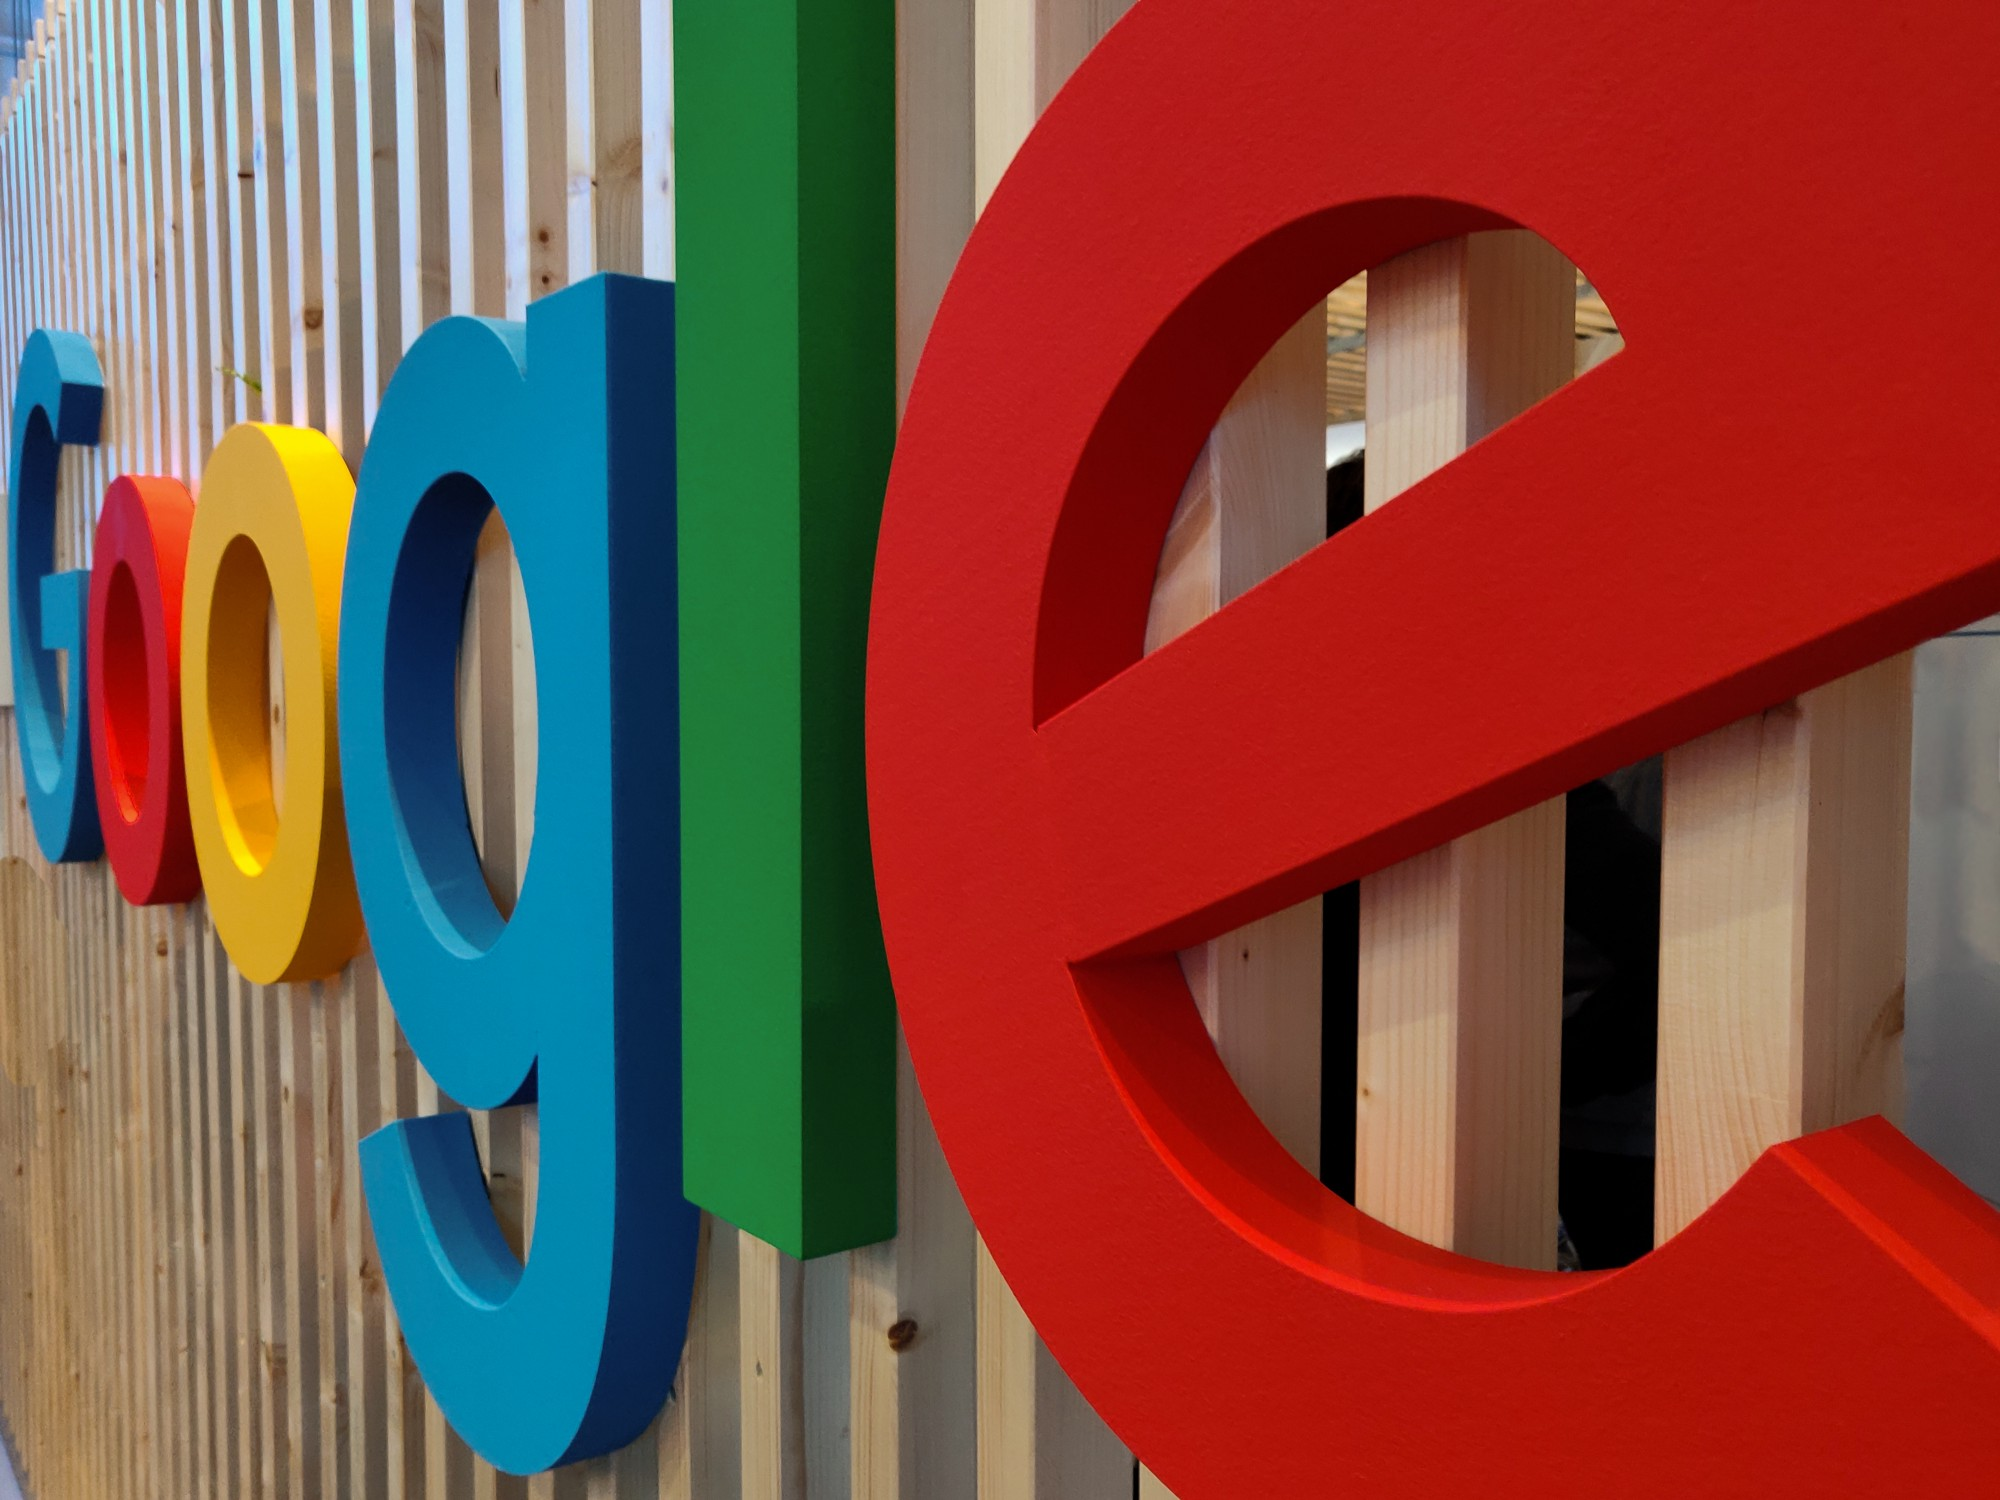 The Google sign on a wooden building.